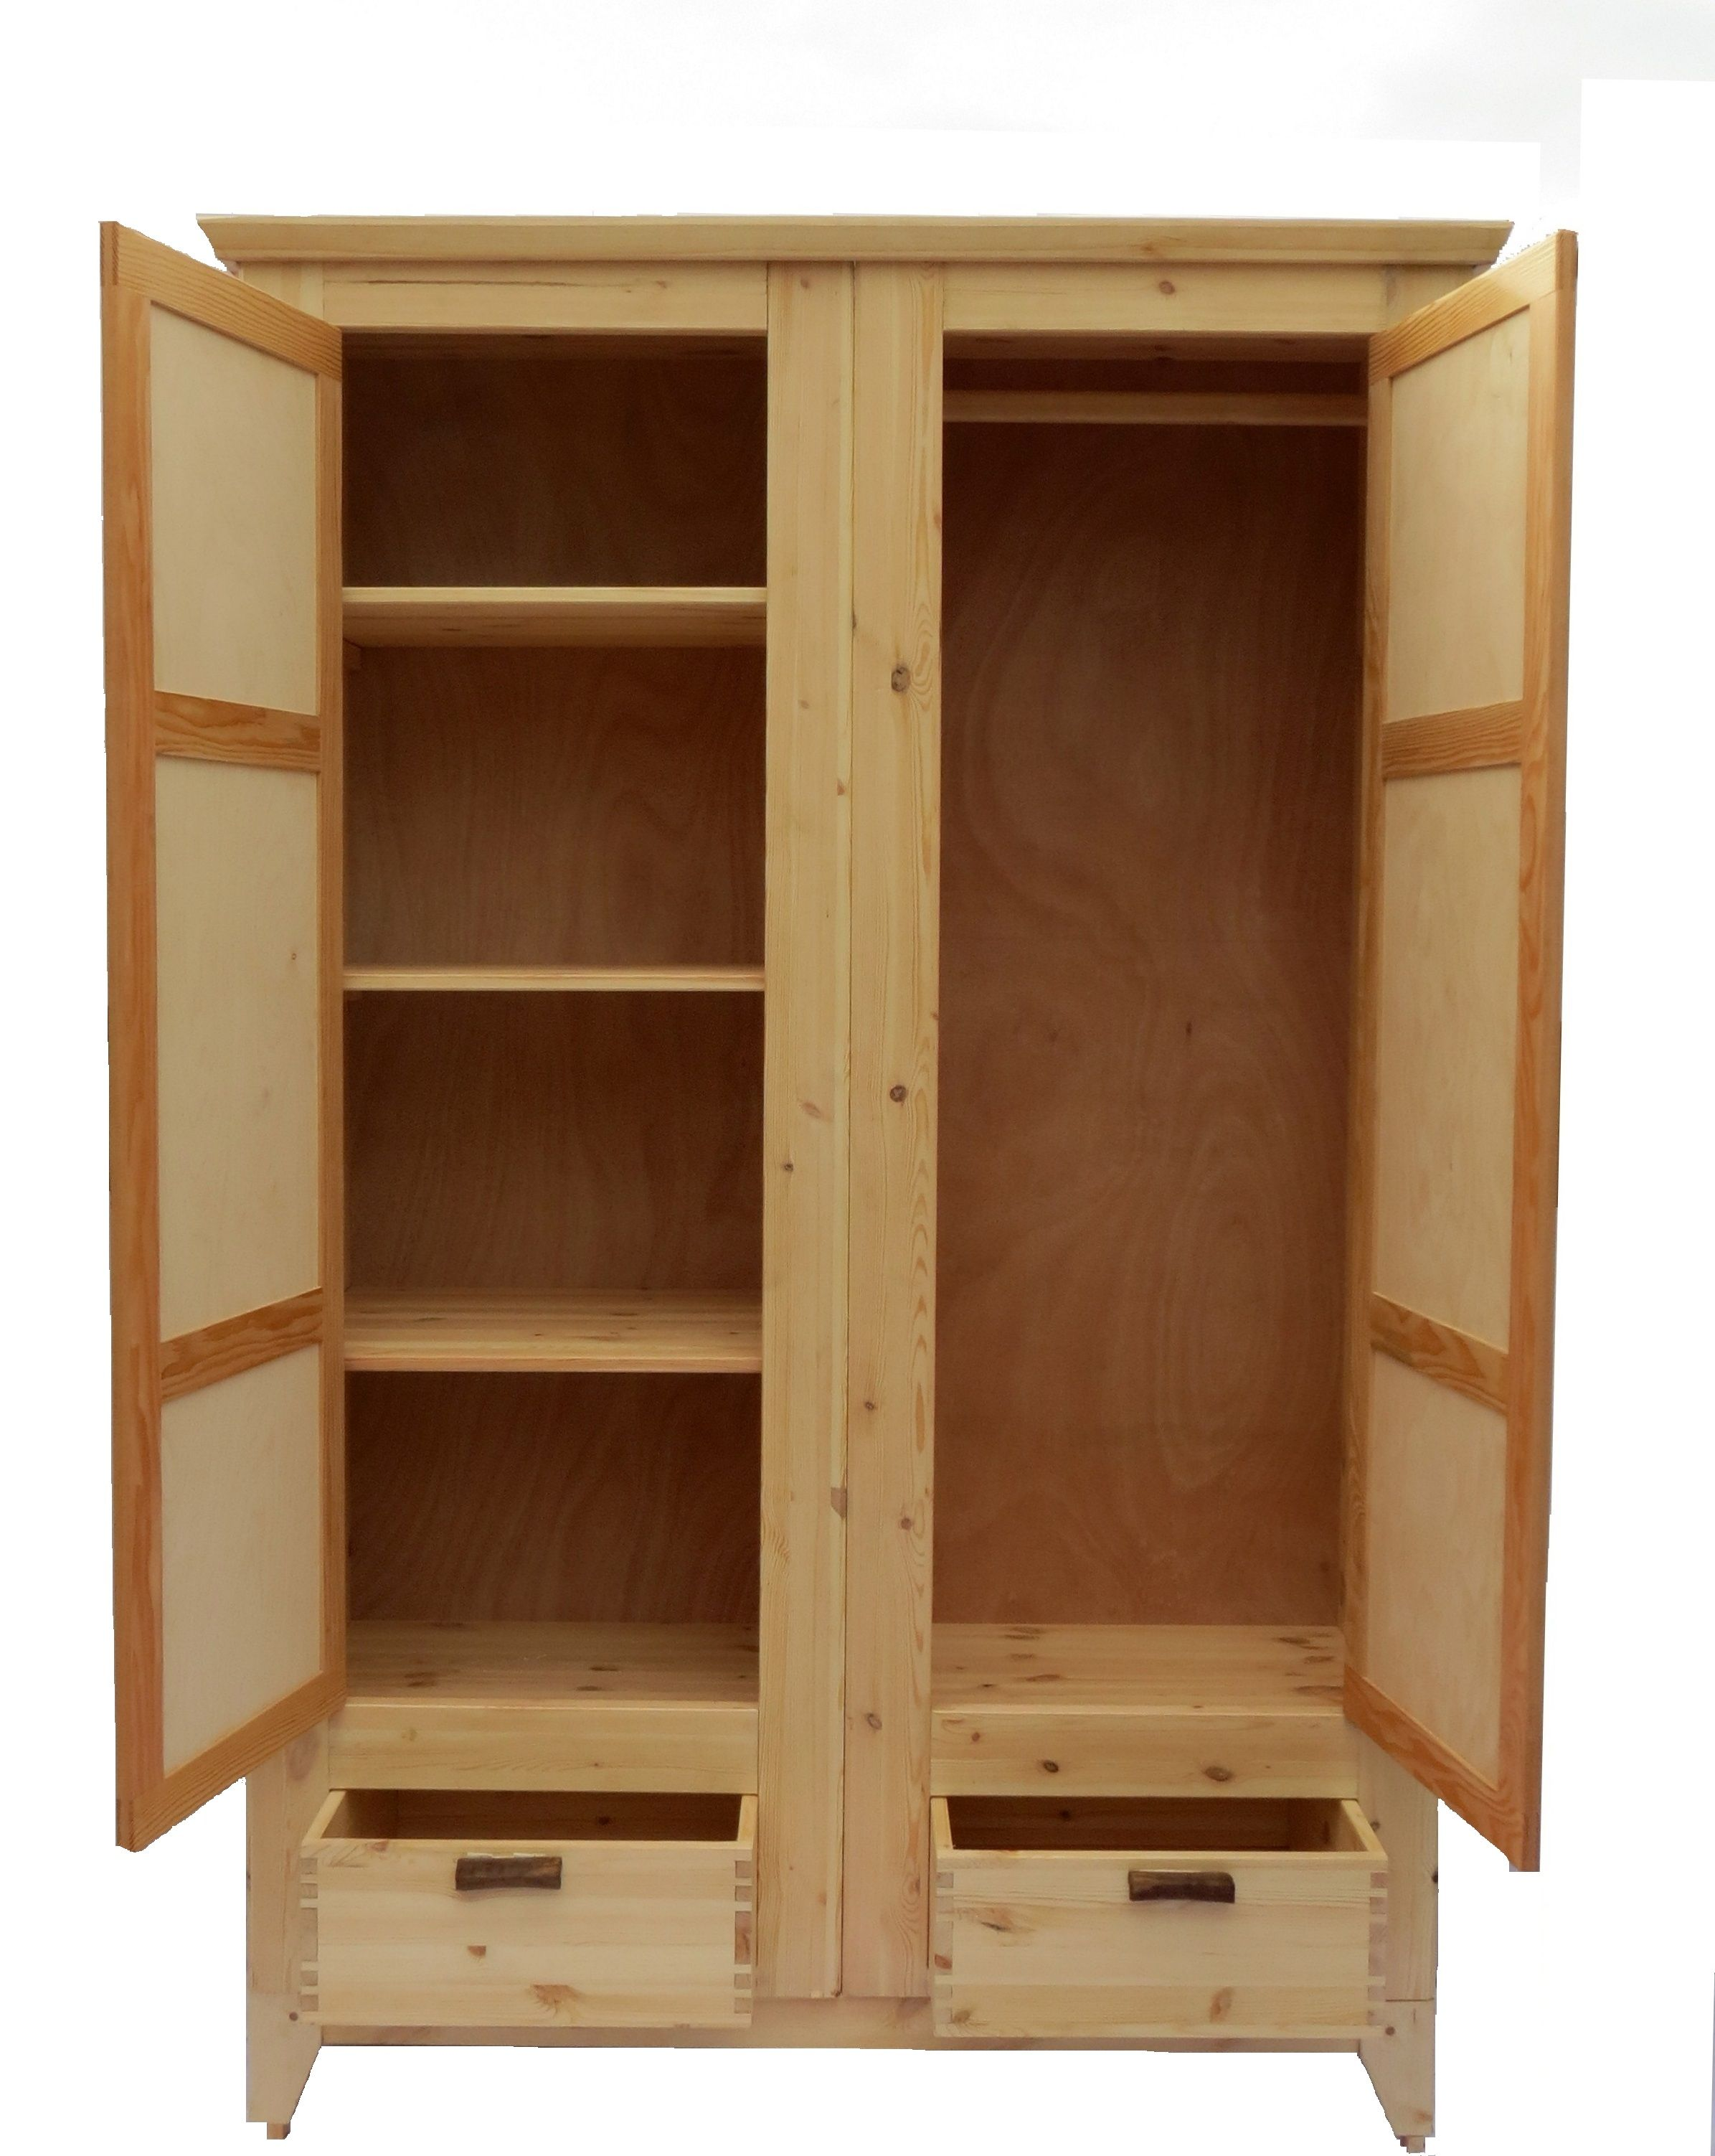 clothes cabinet - Reader's Gallery - Fine Woodworking |  ...